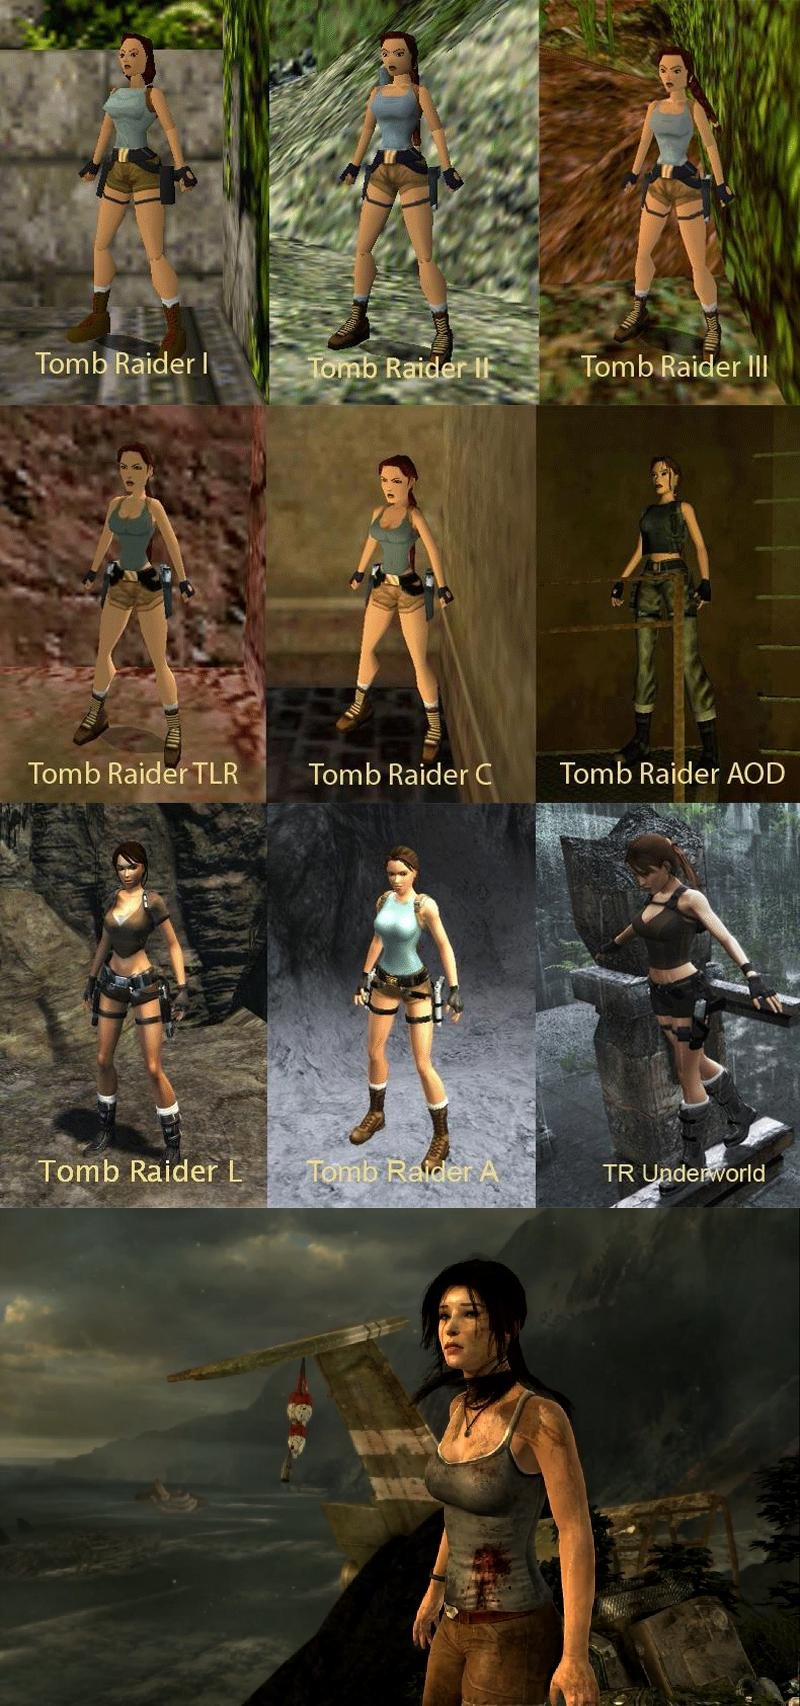 Tomb raider muschi pornos movie